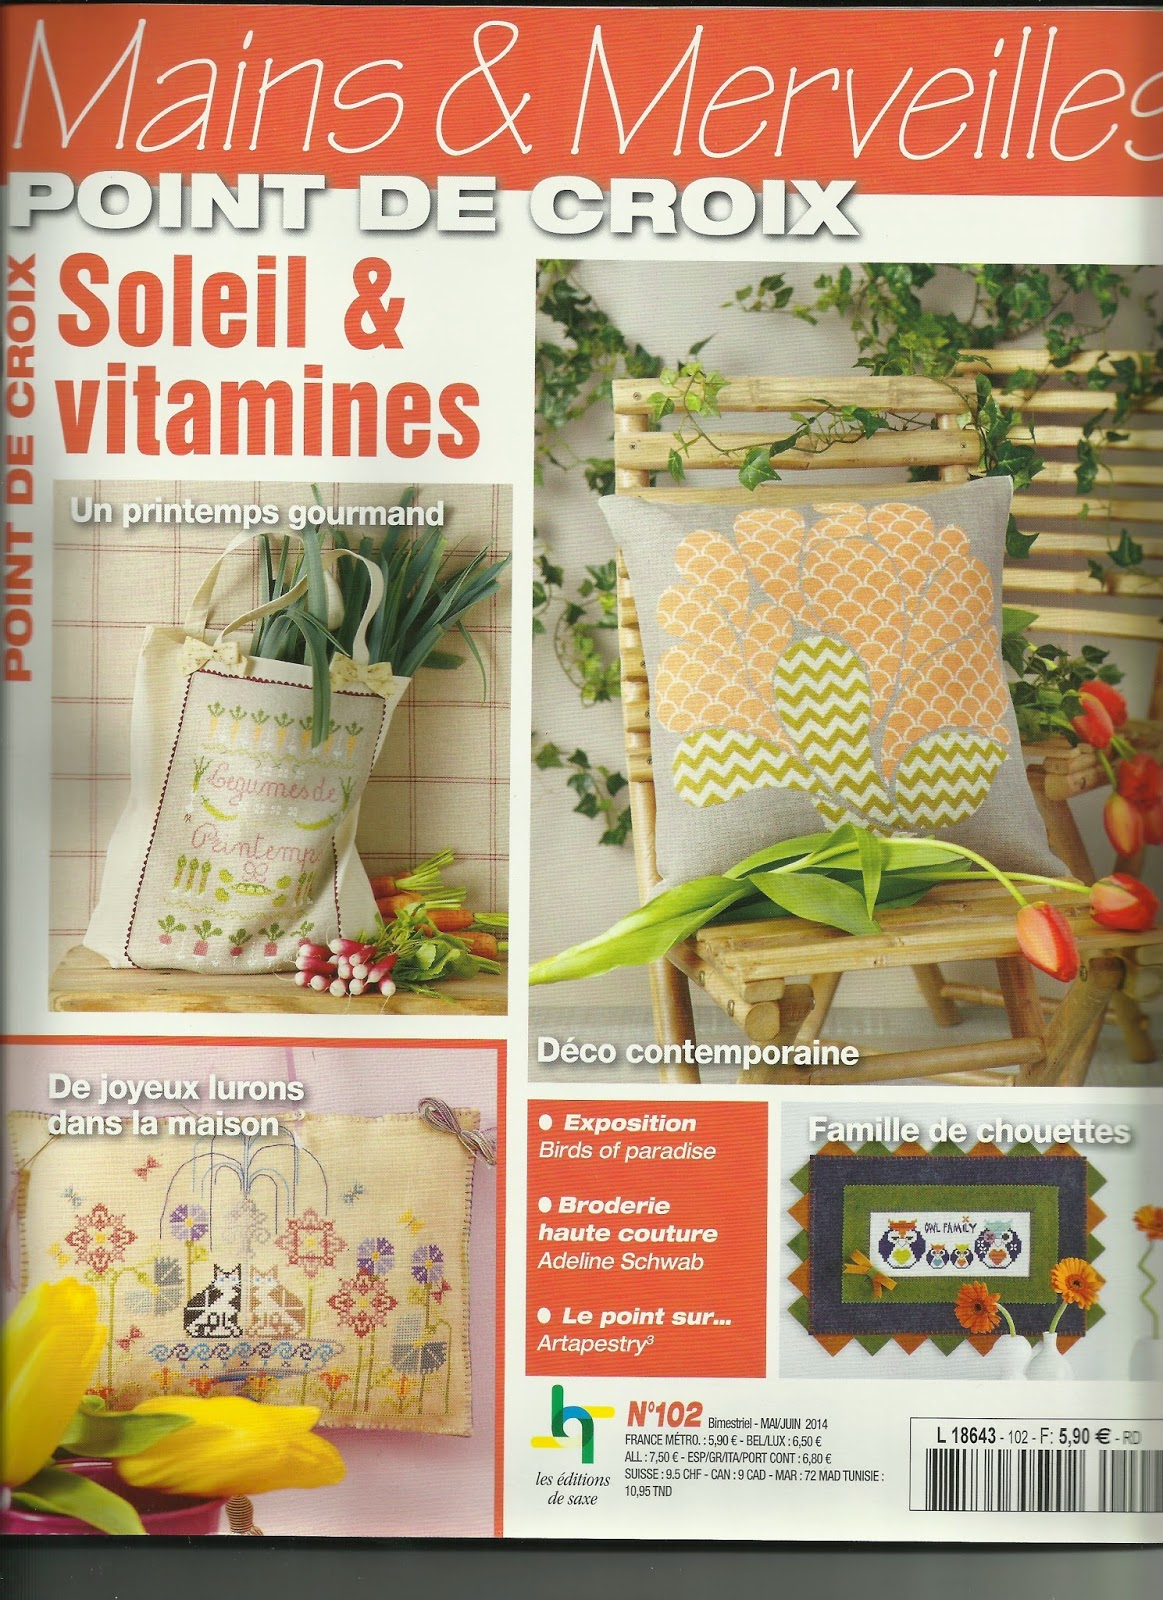 Mains & Merveilles - Article de magasine, 6 pages